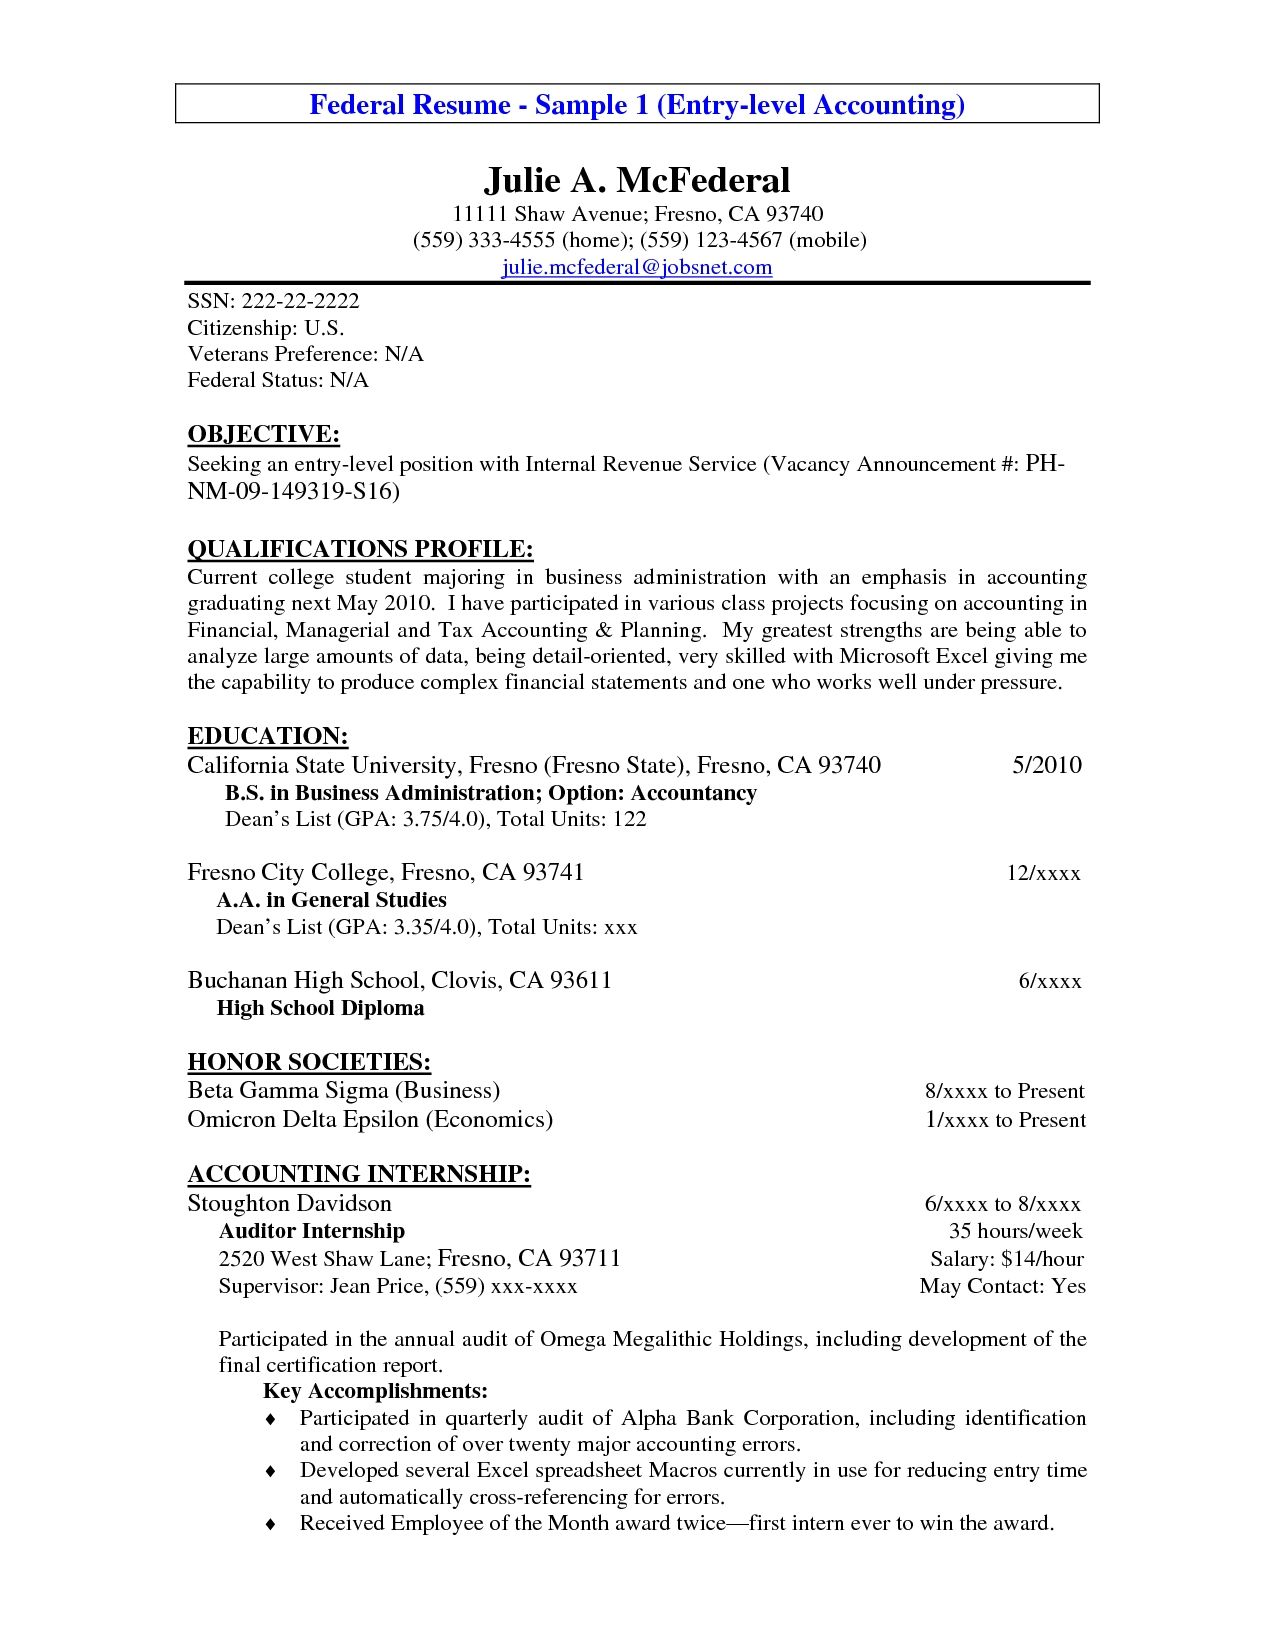 entry level resume example entry level accounting resume sample gallery photos. Resume Example. Resume CV Cover Letter